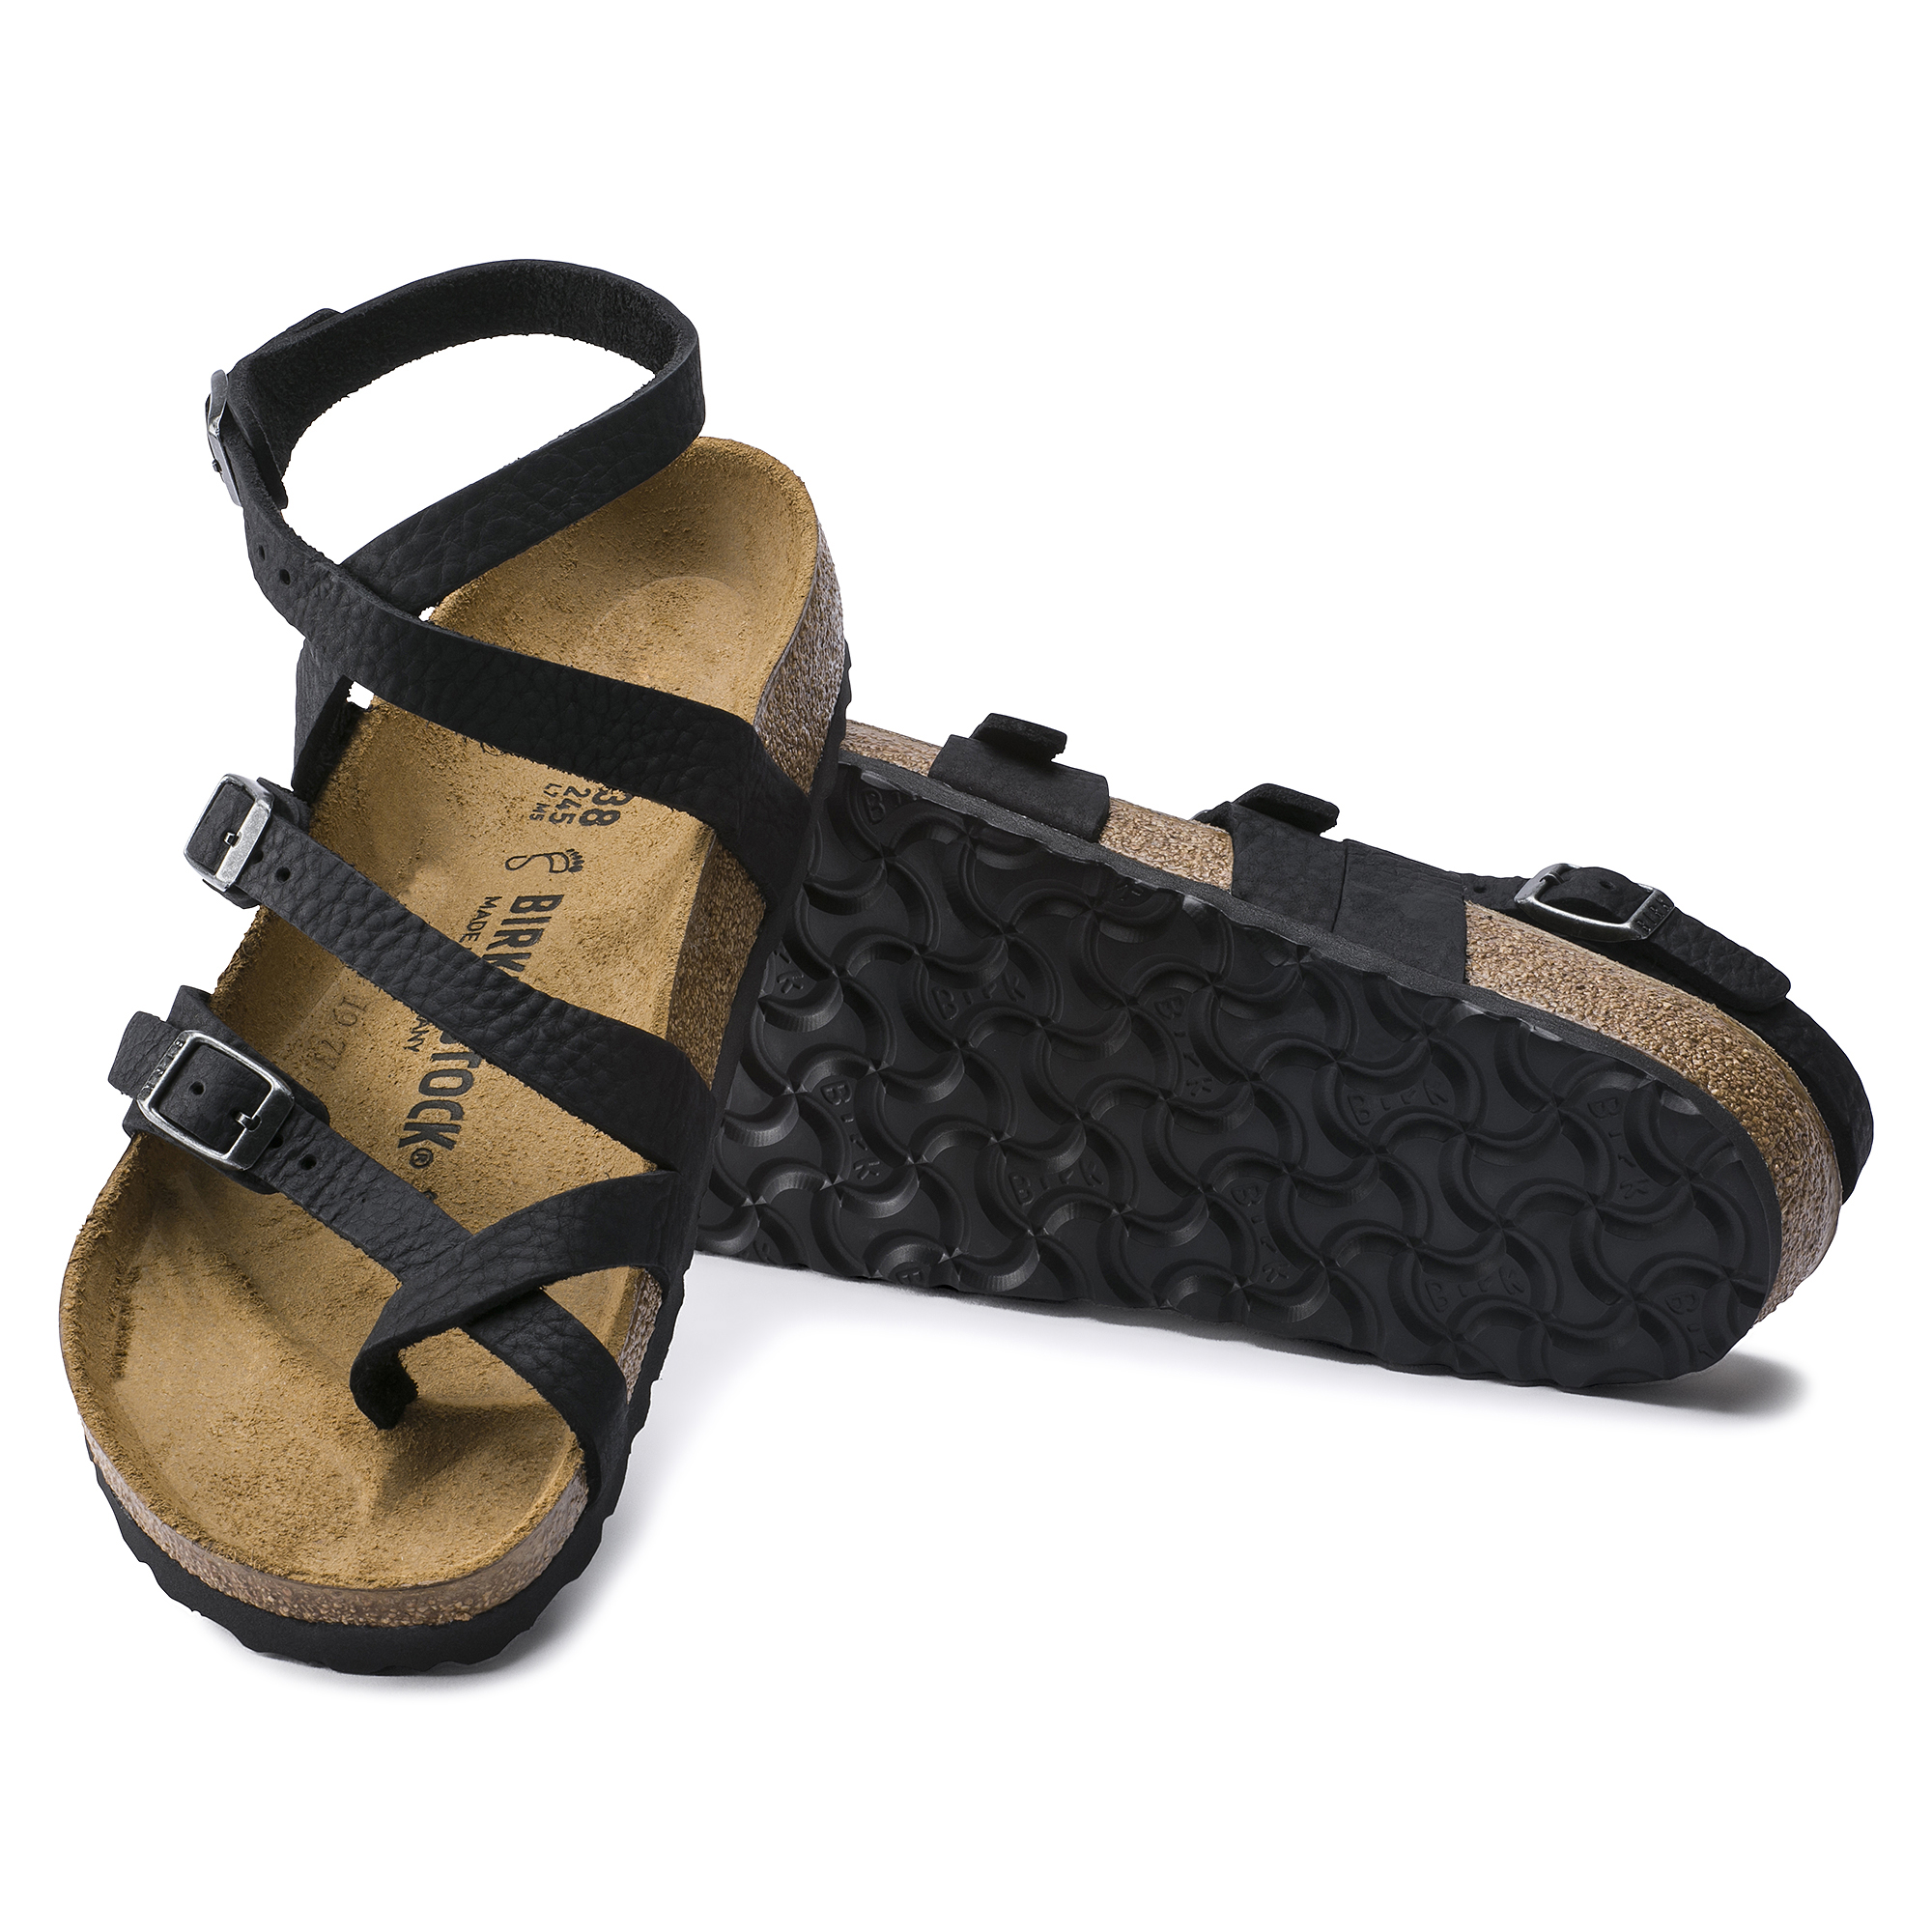 BIRKENSTOCK SANDALS SERES Camberra Old Black natural leather